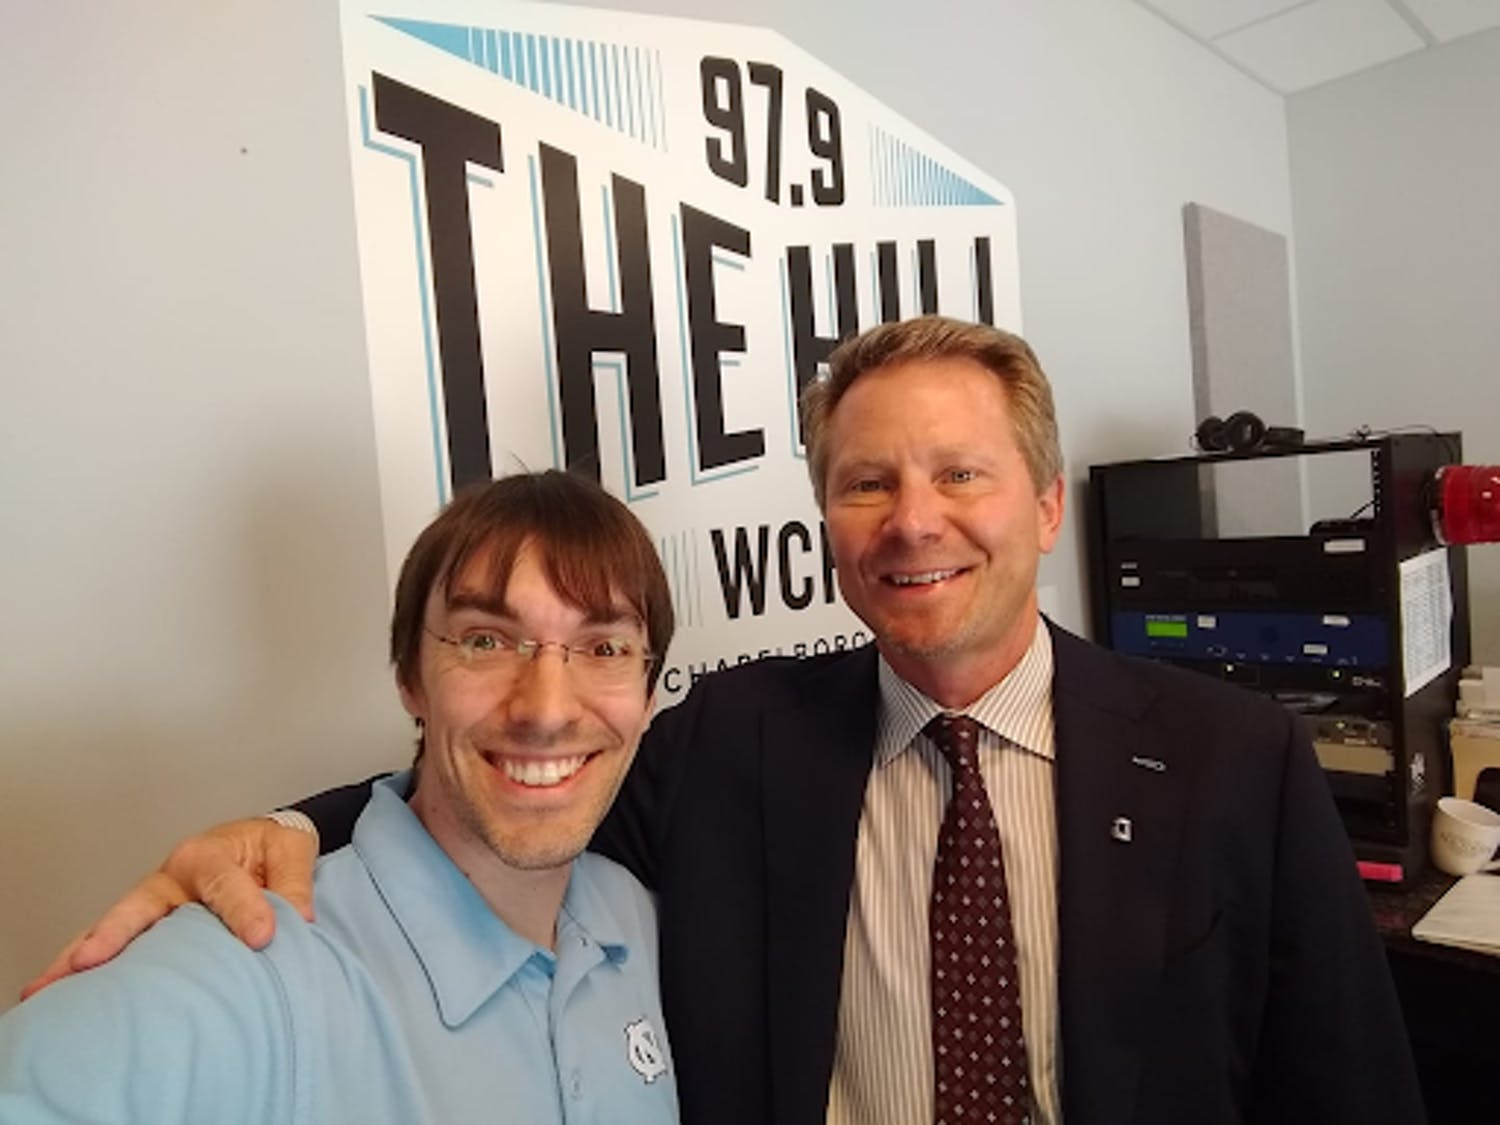 Aaron Keck with UNC Chancellor Kevin Guskiewicz on the 3-month anniversary of his appointment in May 2019. Courtesy of Aaron Keck / WCHL.